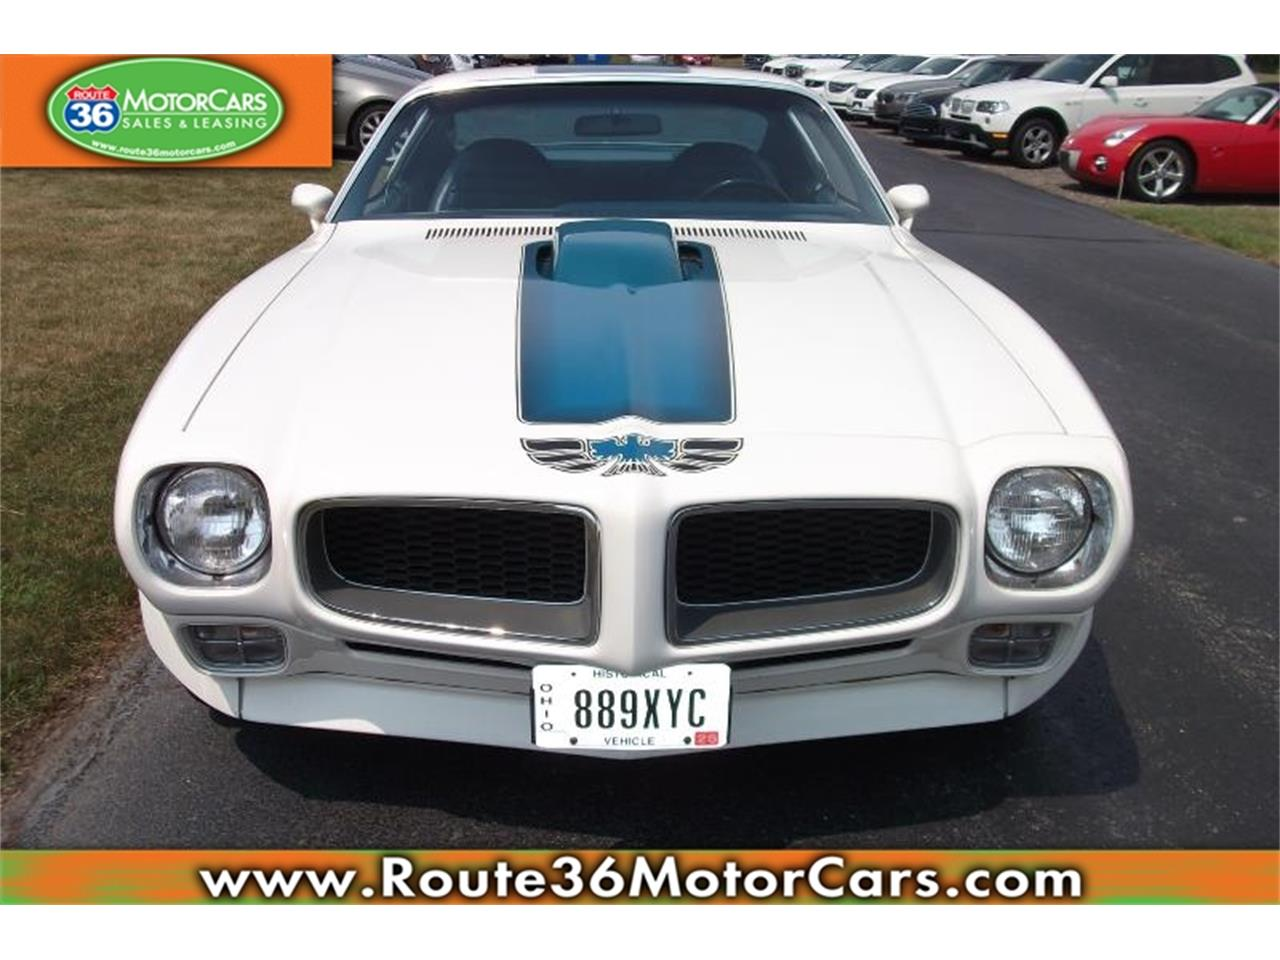 Large Picture of Classic 1972 Firebird - $54,975.00 Offered by Route 36 Motor Cars - IKH6